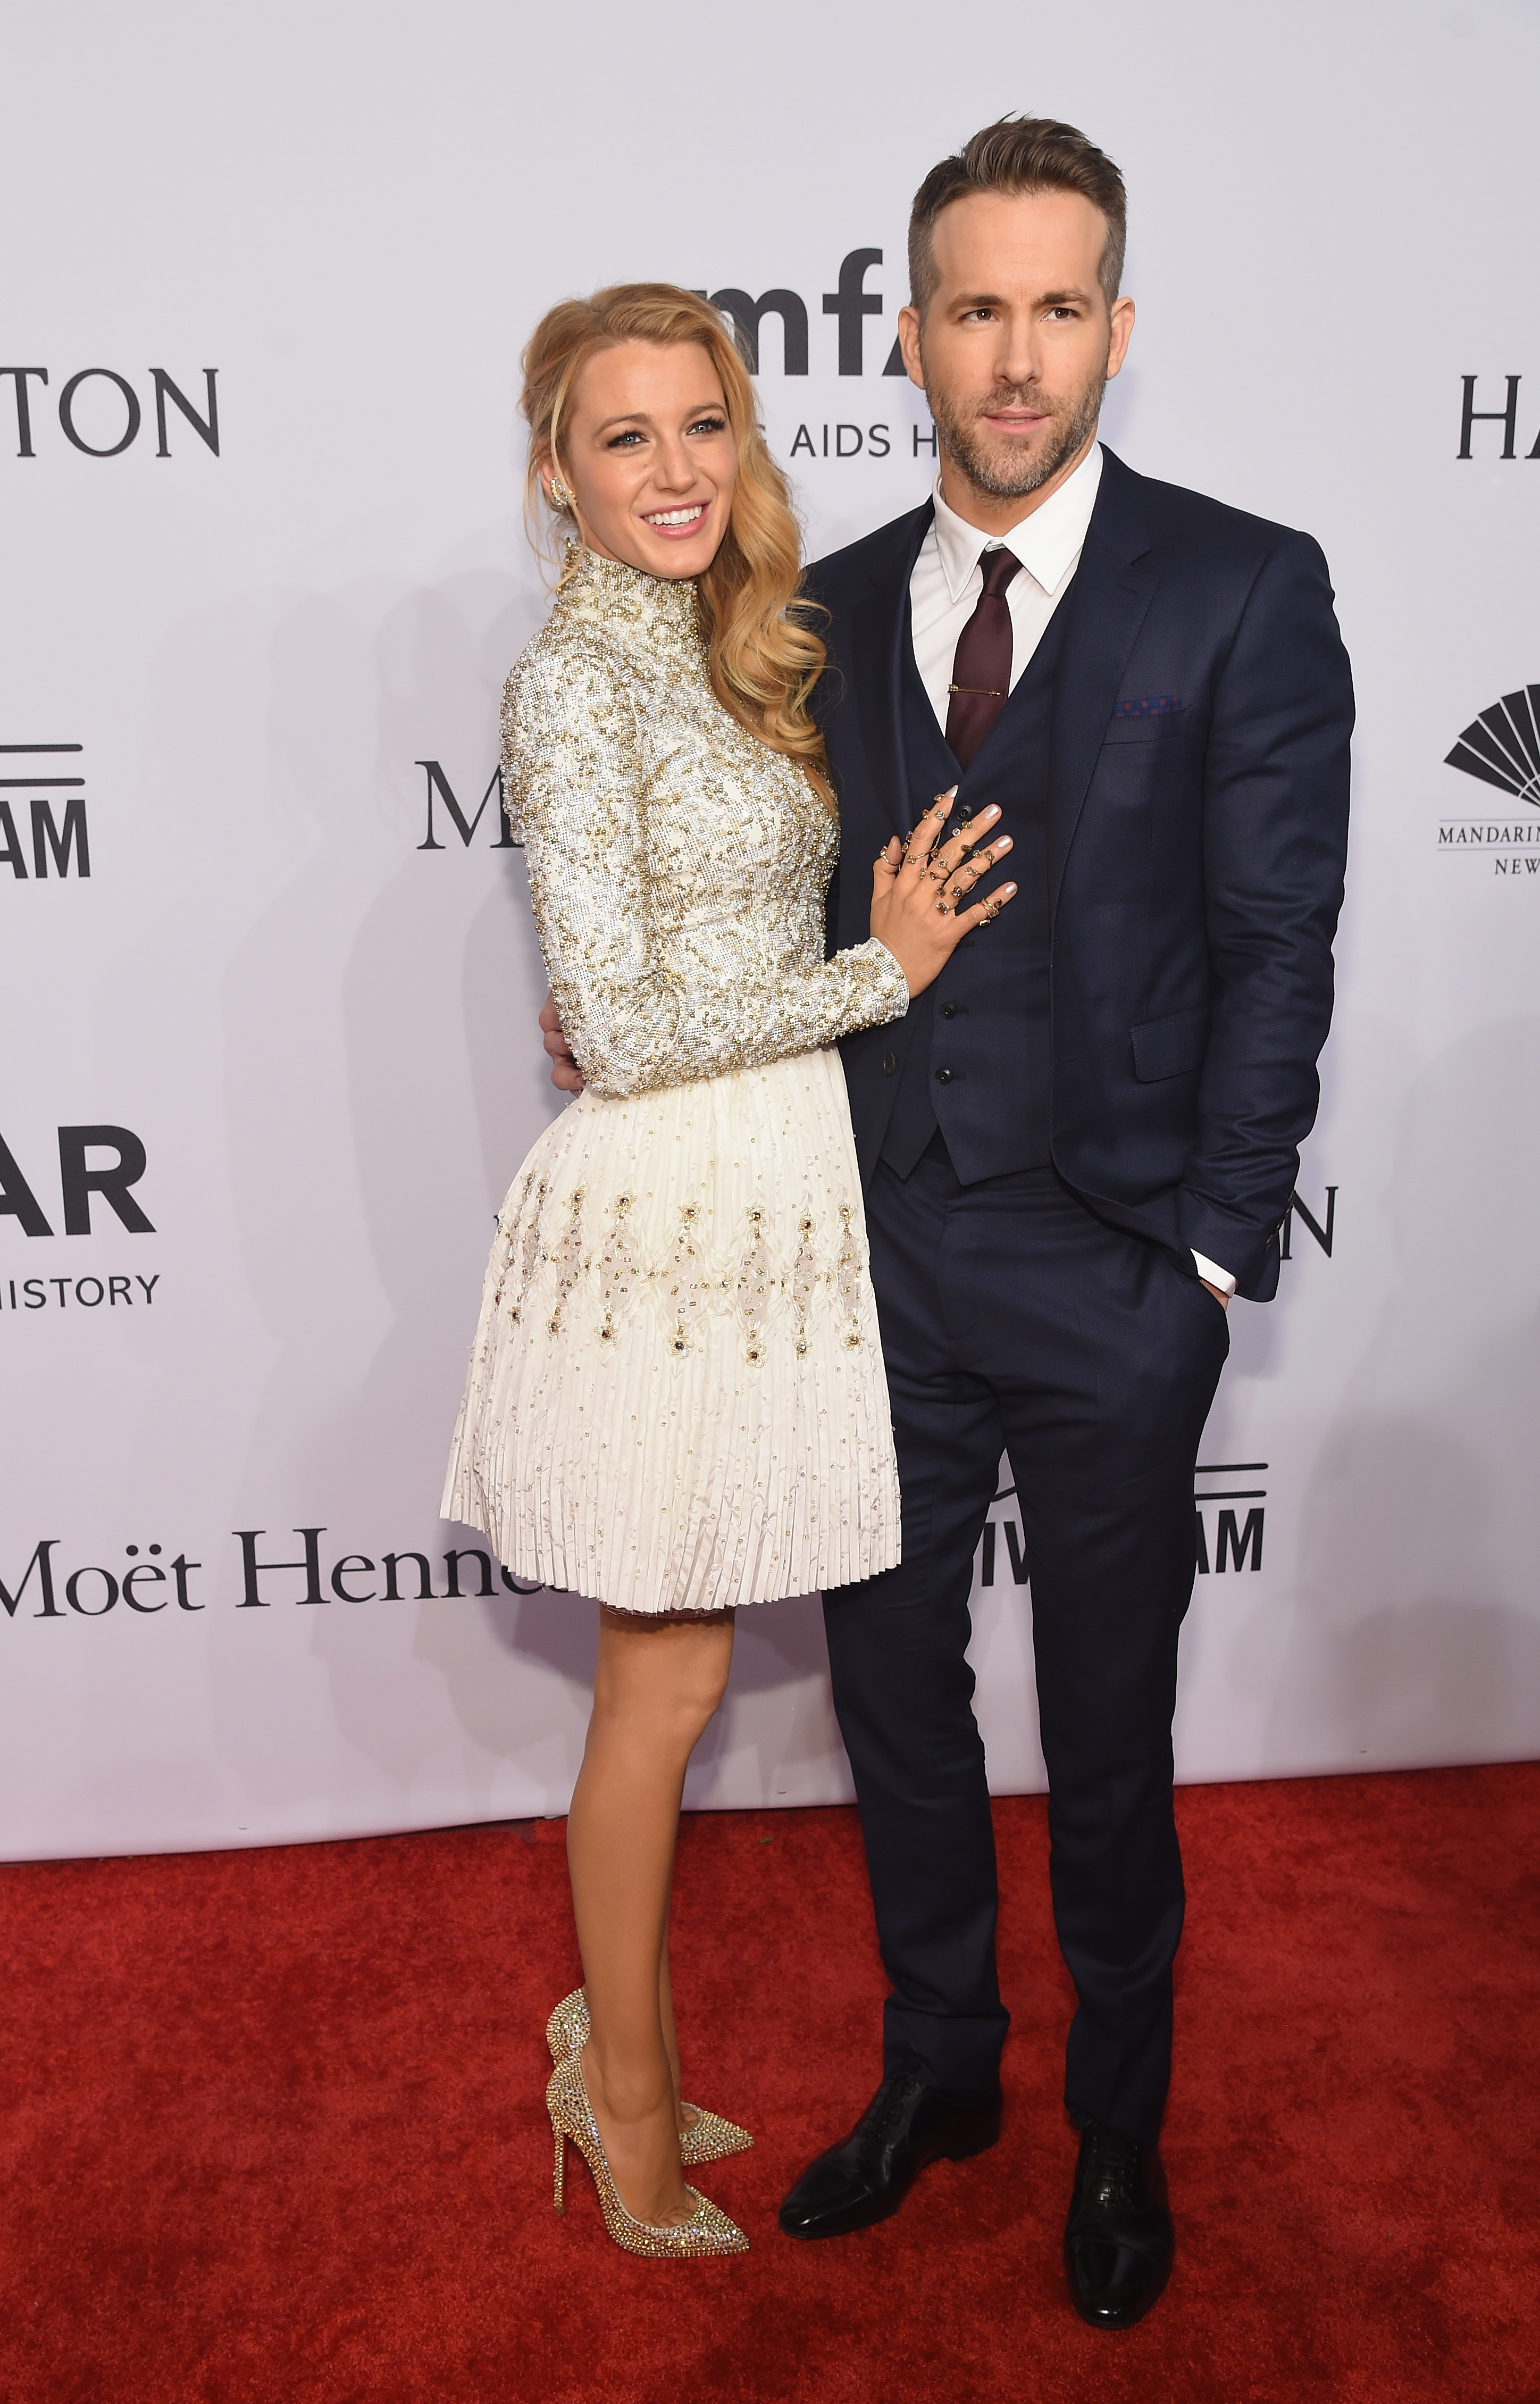 <p>Serving as the official start to New York Fashion Week, the amfAR Gala drew a very chic crowd of models, actresses and style icons to New York's Wall Street.</p><p>If these red carpet gowns are any indication of what will be on the runways, autumn/winter 2016 is set to be one hot season. </p>